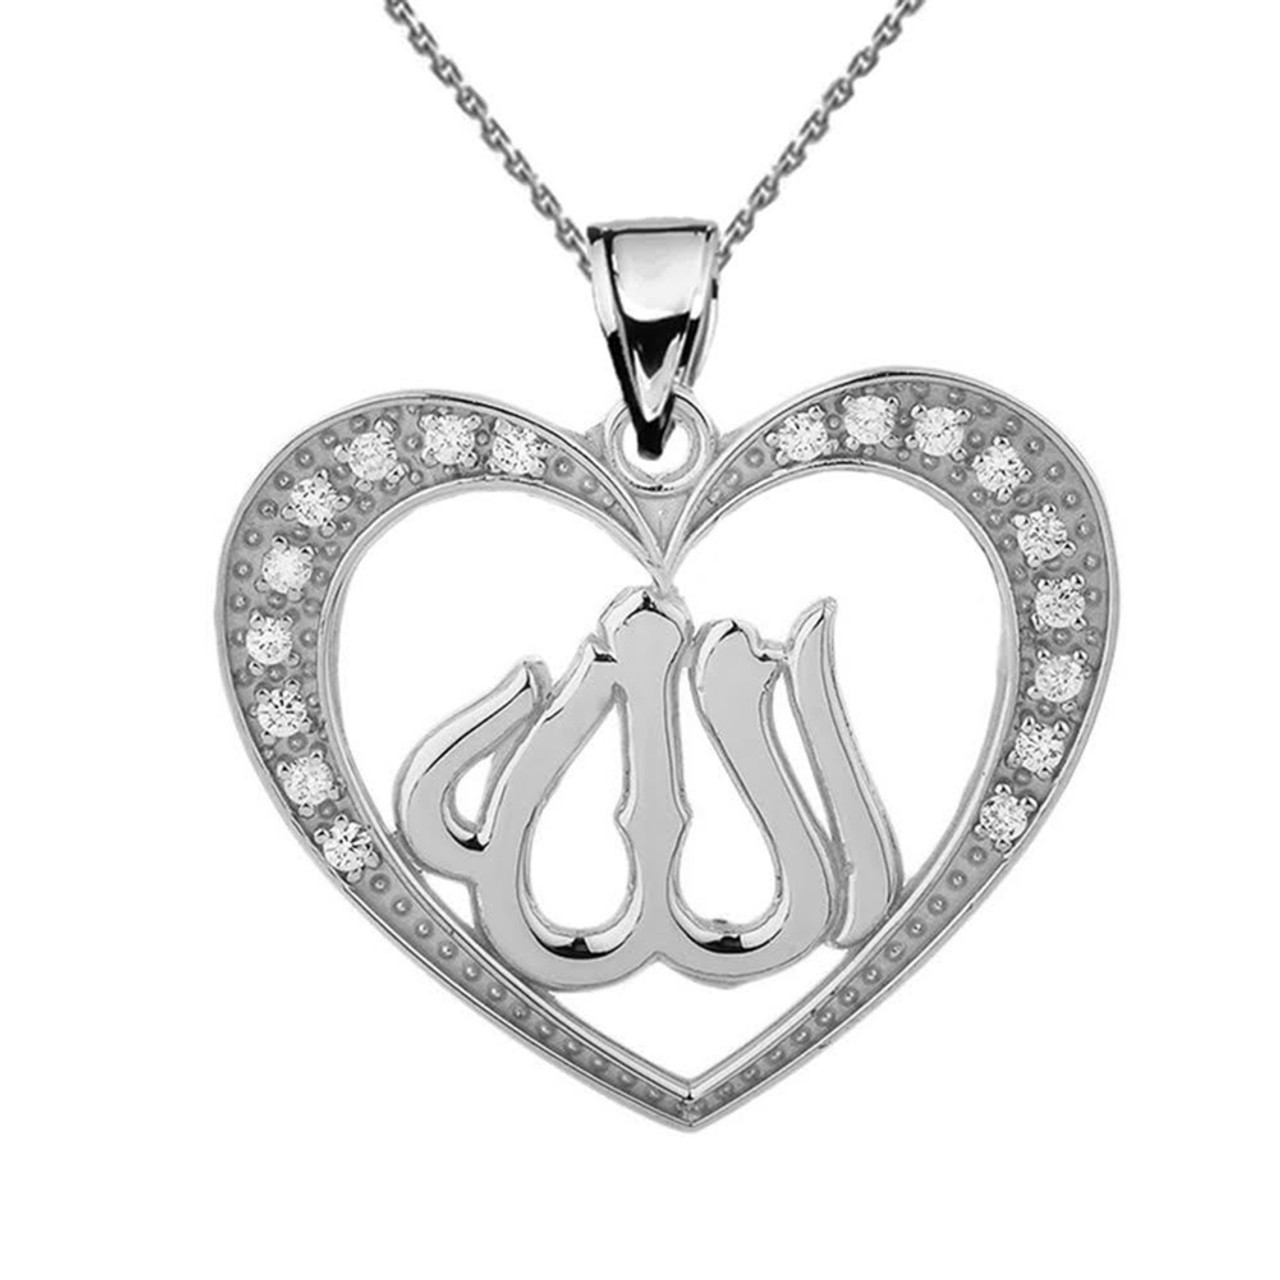 White gold cubic zirconia heart with allah pendant necklace aloadofball Gallery